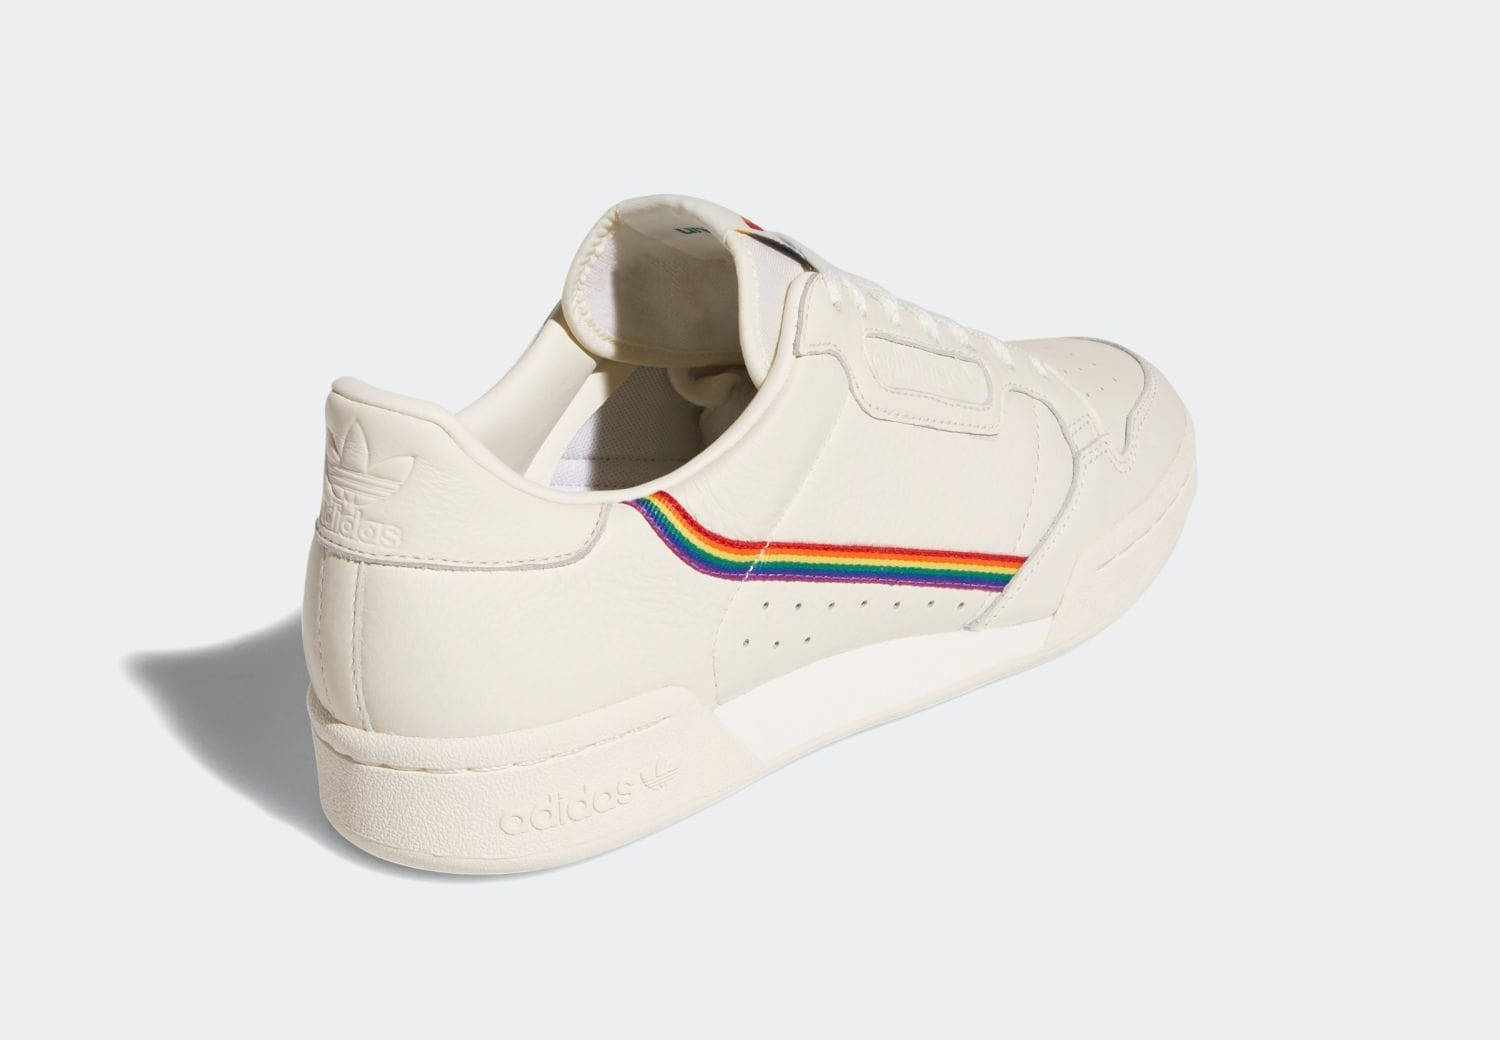 The Continental Rocks Rainbow Detail to